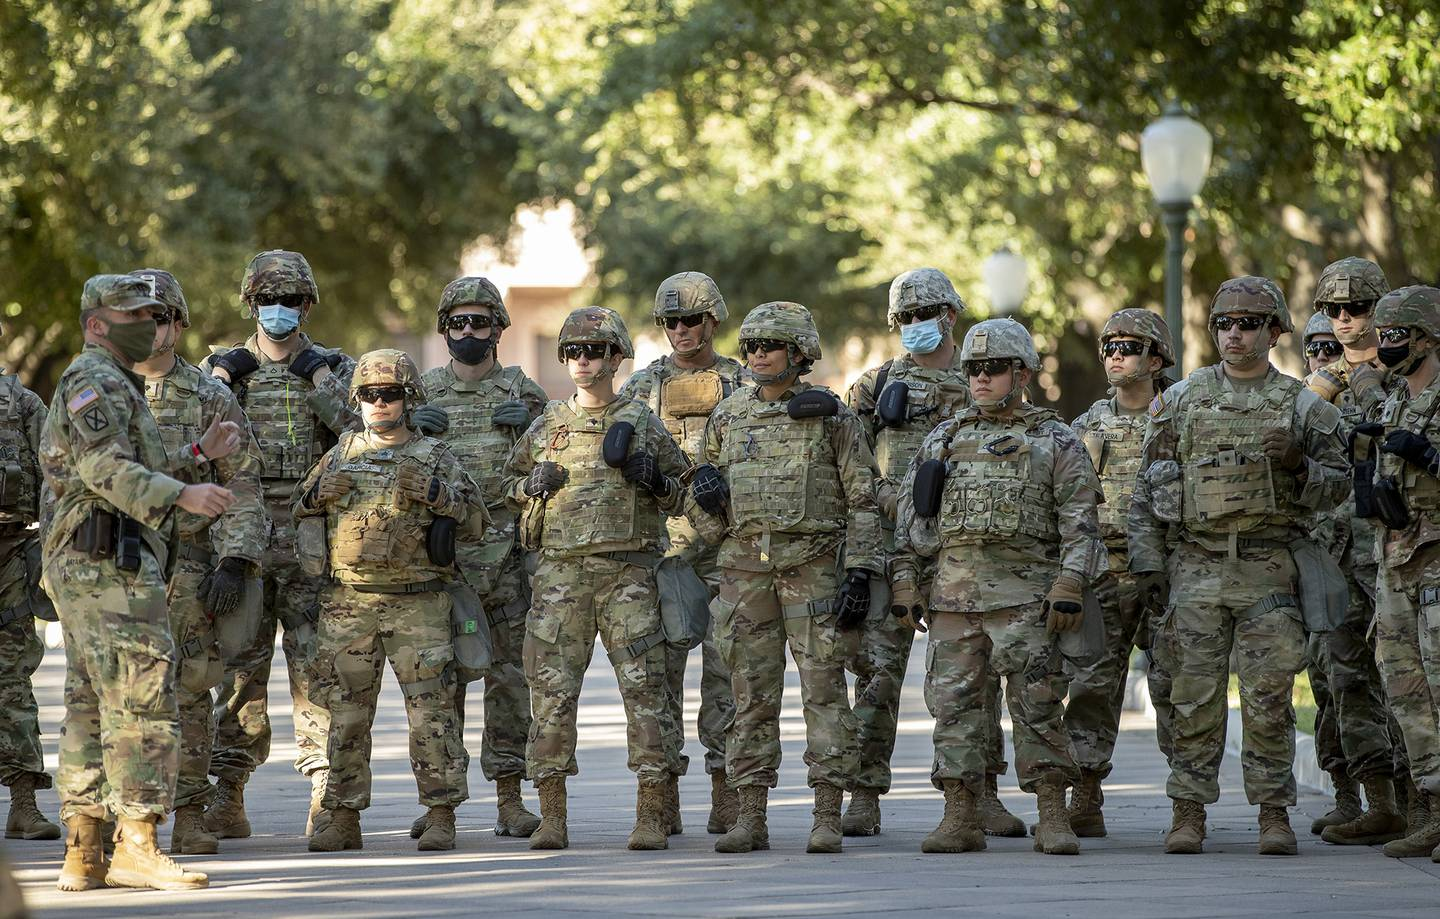 Soldiers with the Texas Army National Guard gather at the Capitol in Austin, Texas, on election day Tuesday, Nov. 3, 2020.